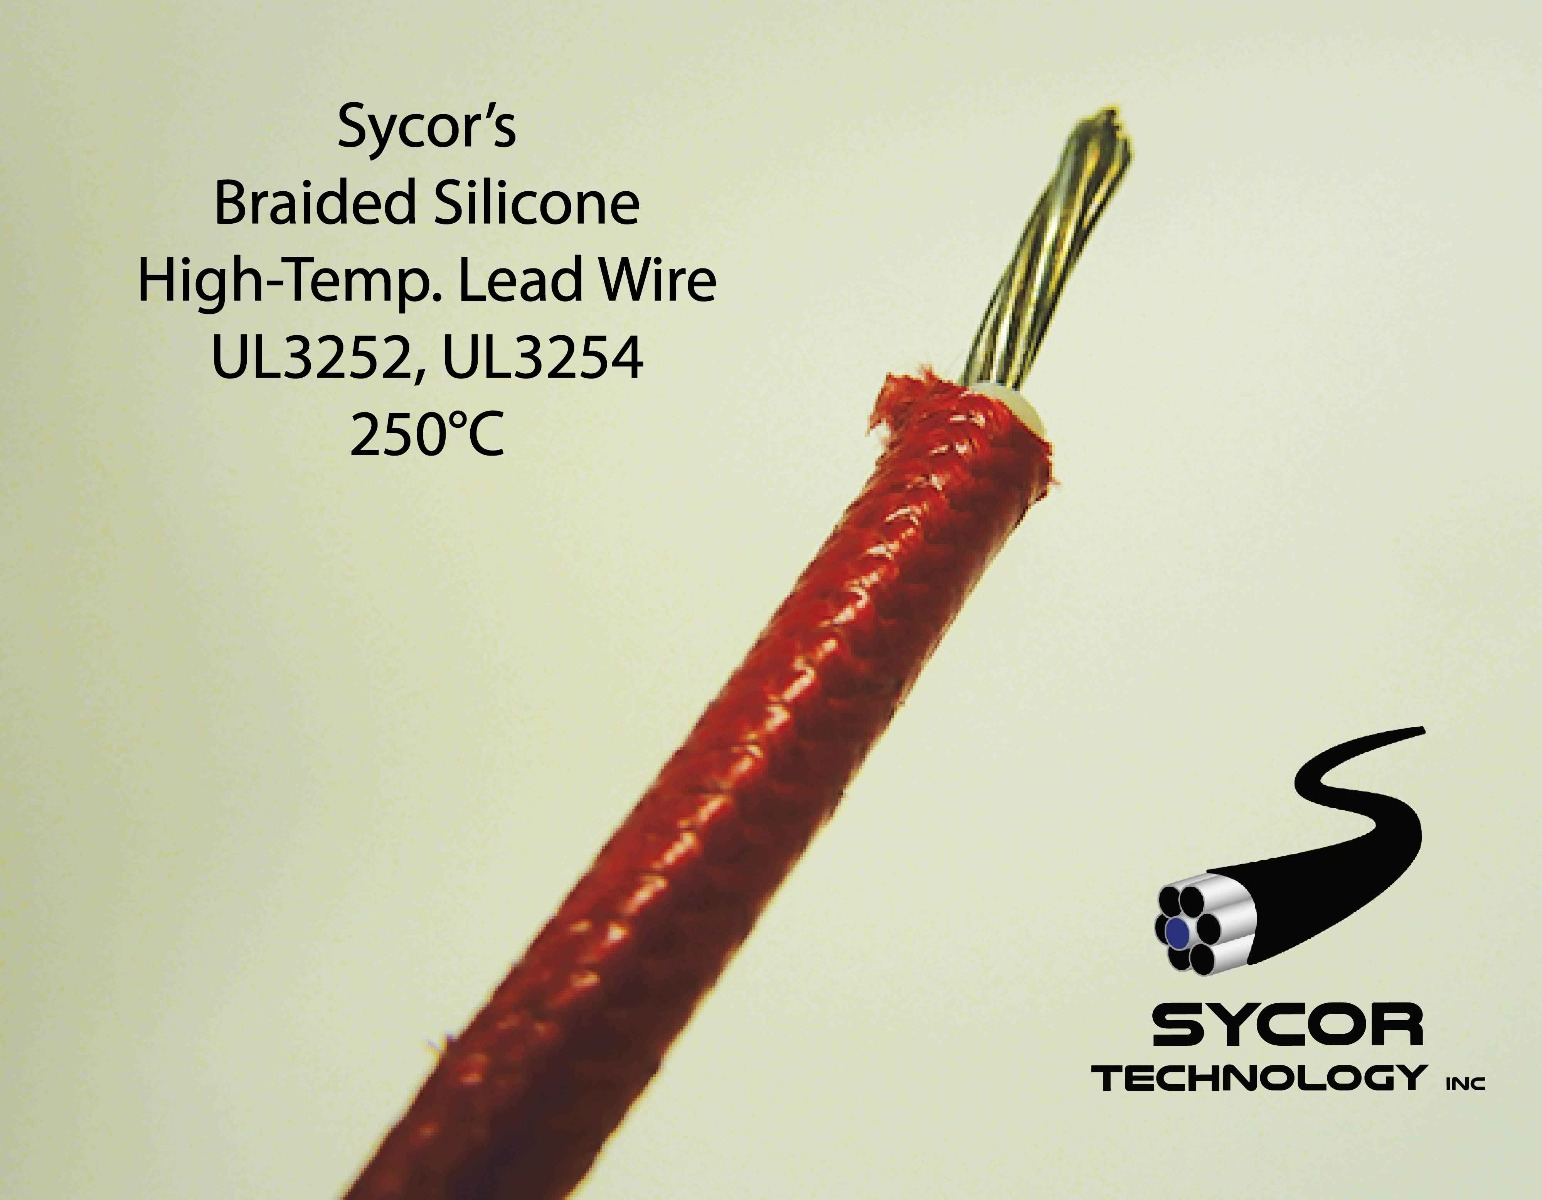 High-Temp. Lead Wire UL3252, UL3254